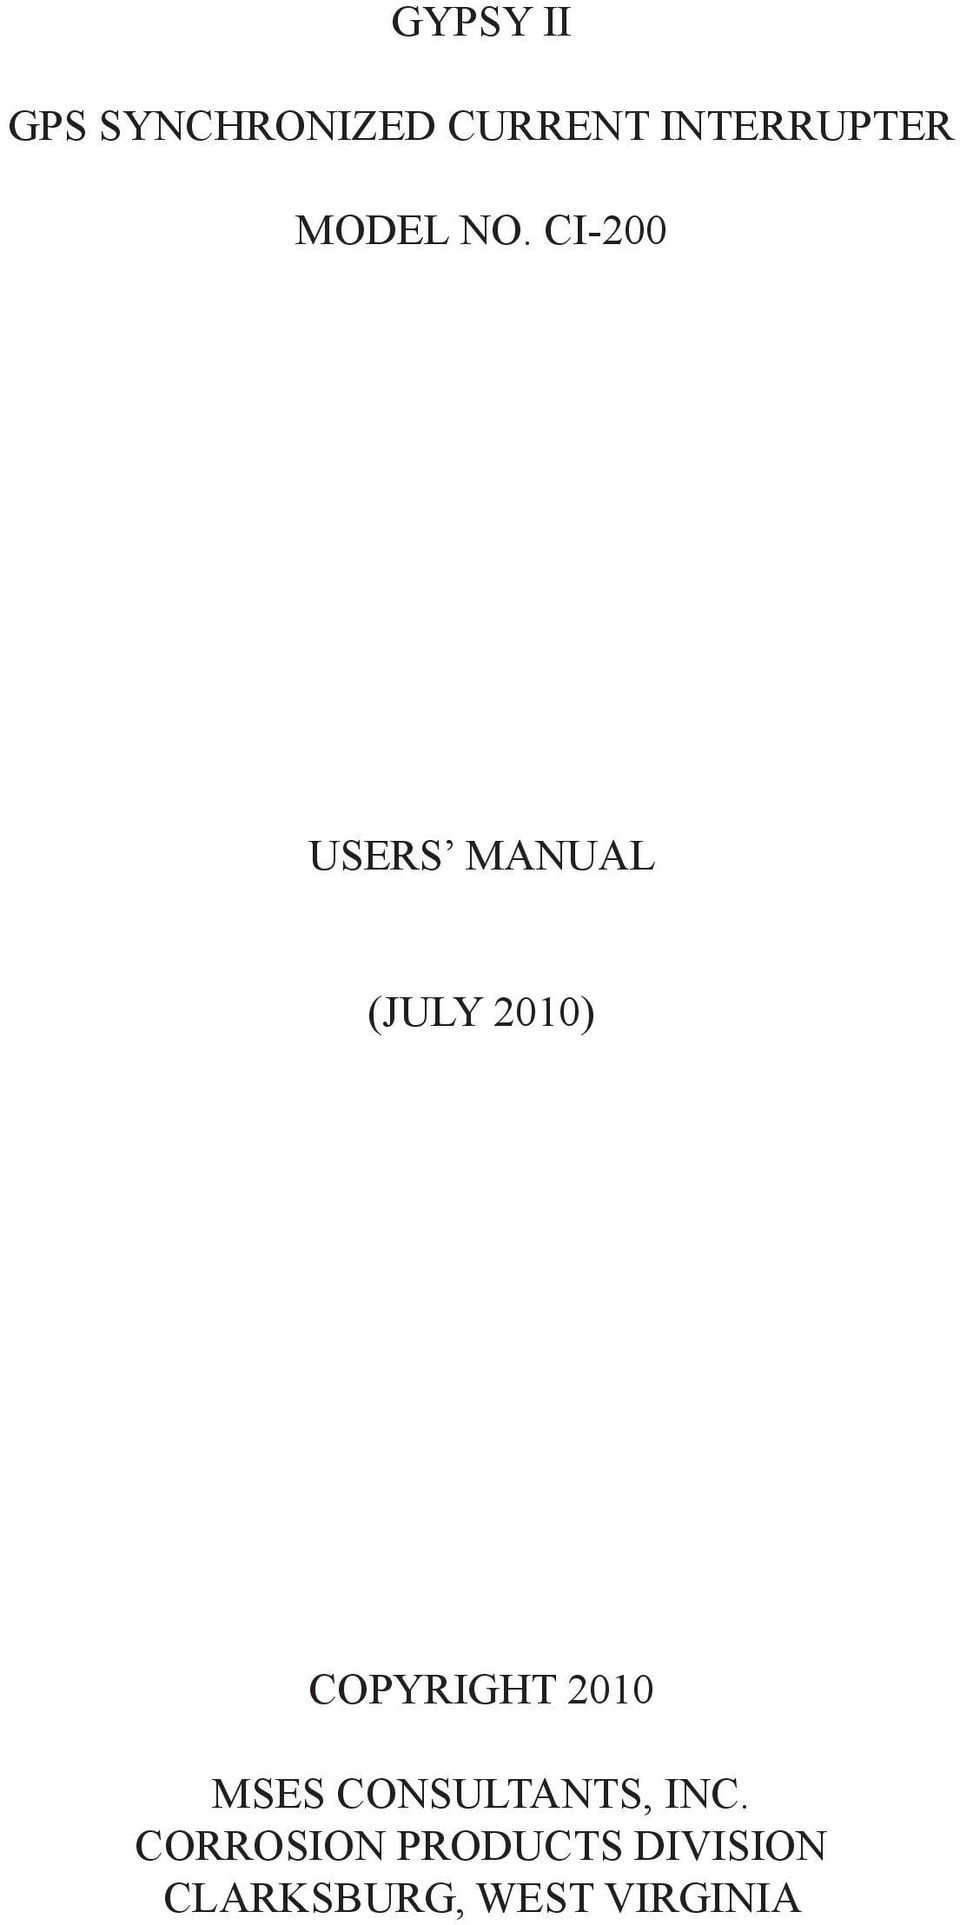 CI-200 USERS MANUAL (JULY 2010) COPYRIGHT